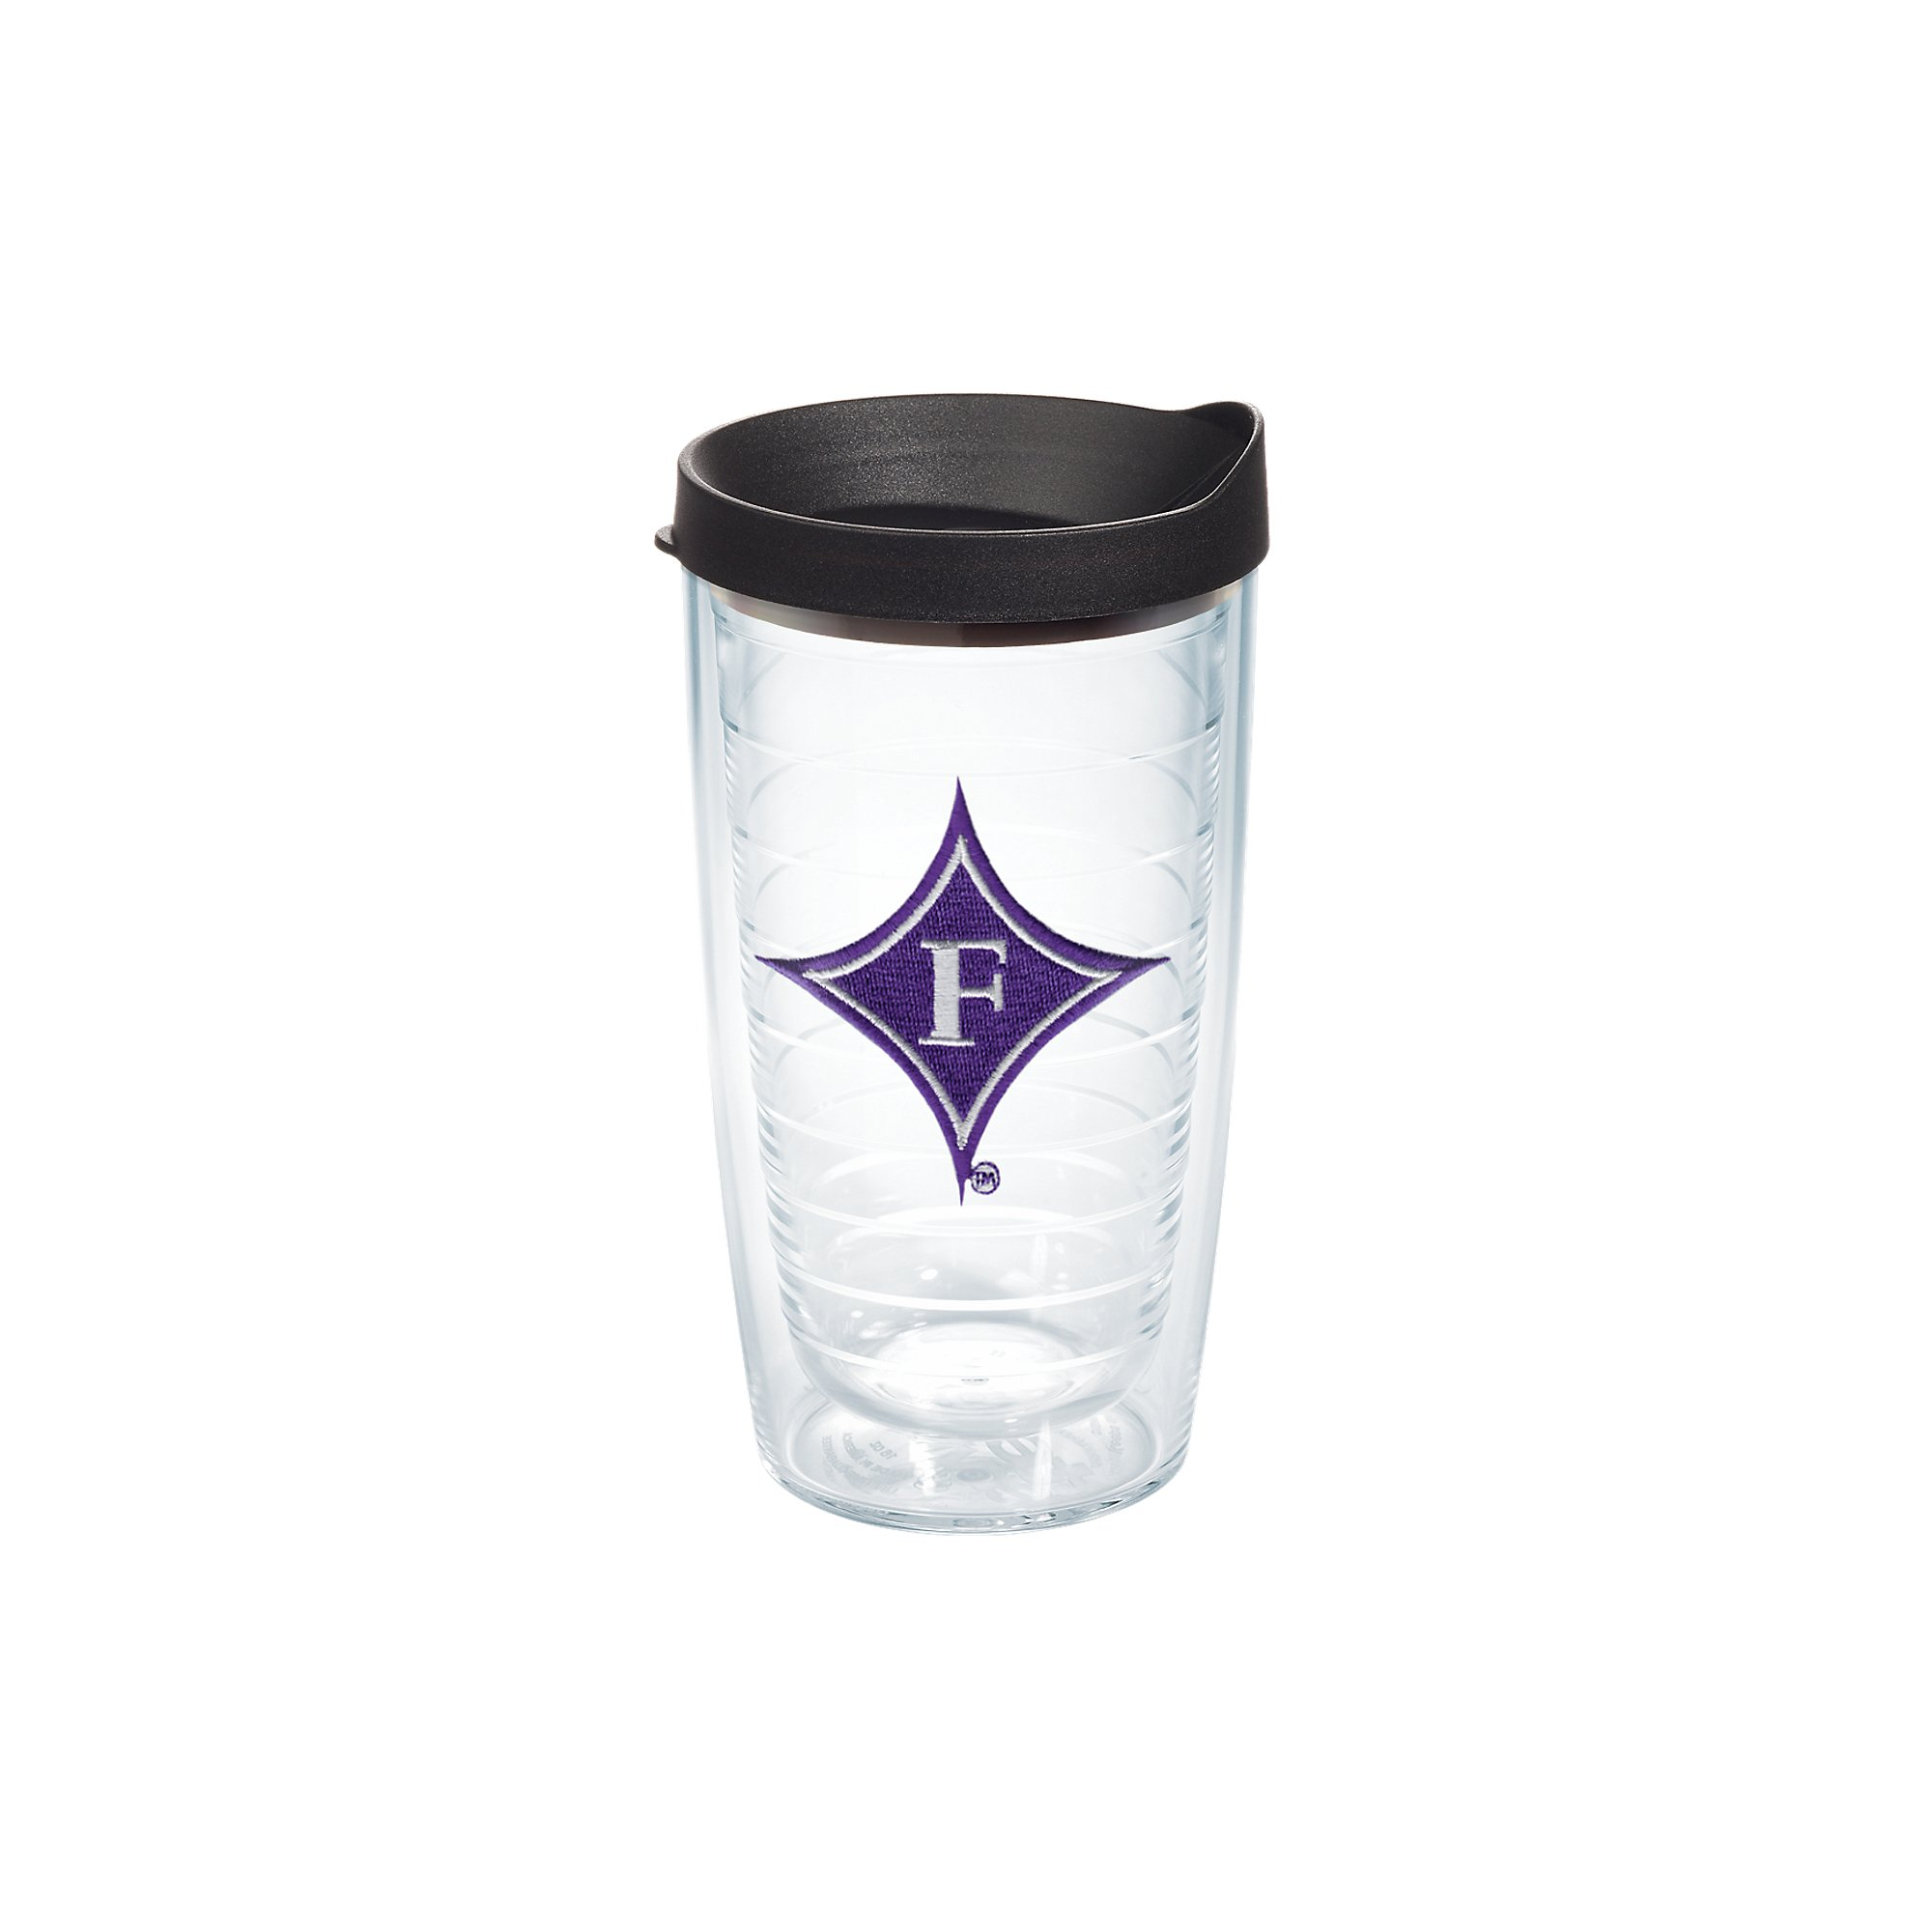 Tervis 1056582 Furman Paladins Logo Tumbler with Emblem and Black Lid 16oz, Clear